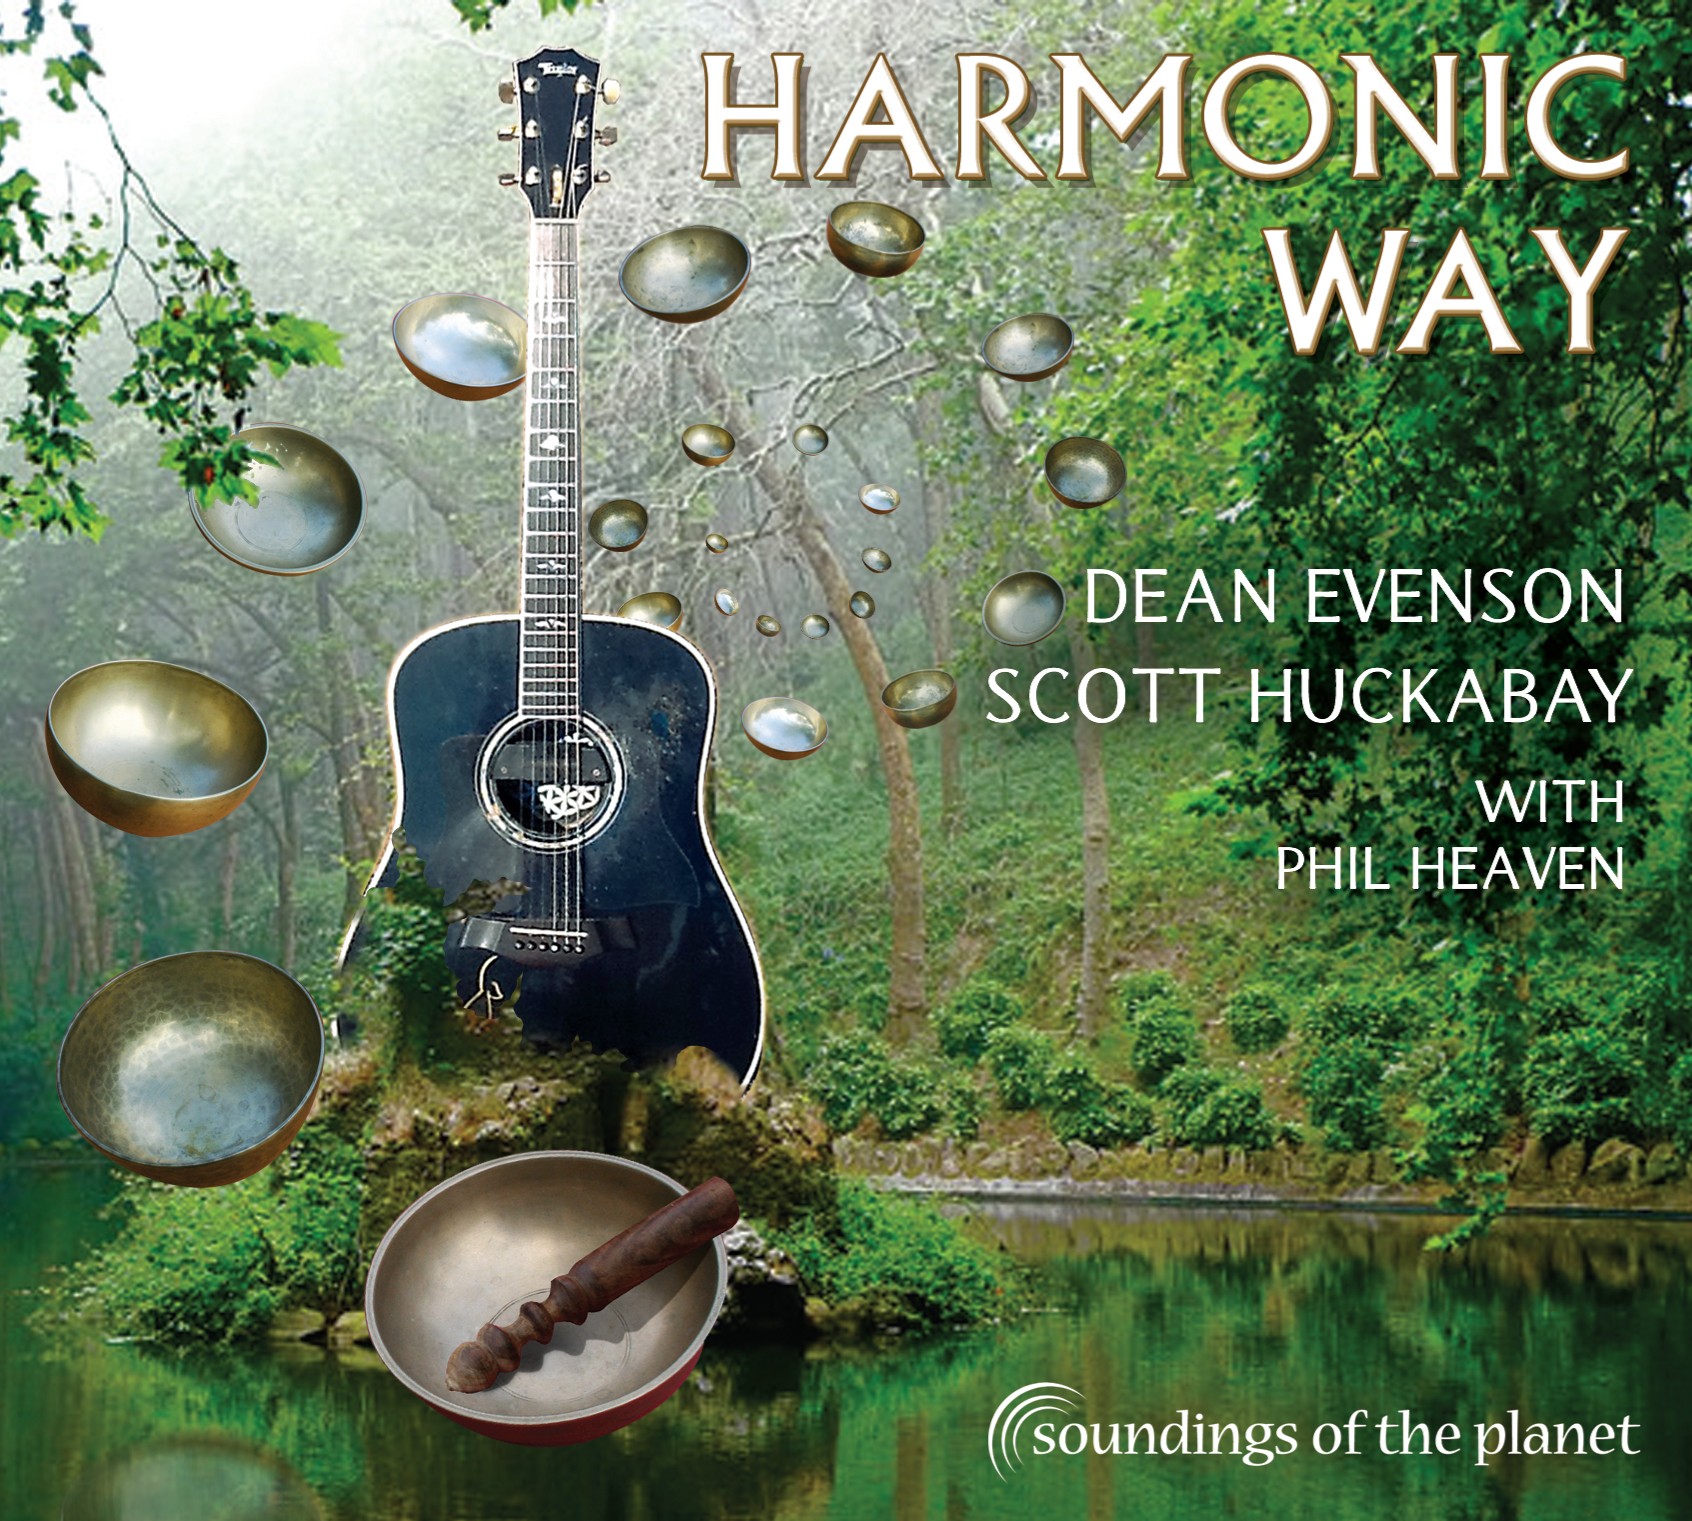 Harmonic Way by Dean Evenson & Scott Huckabay - SOP_7221